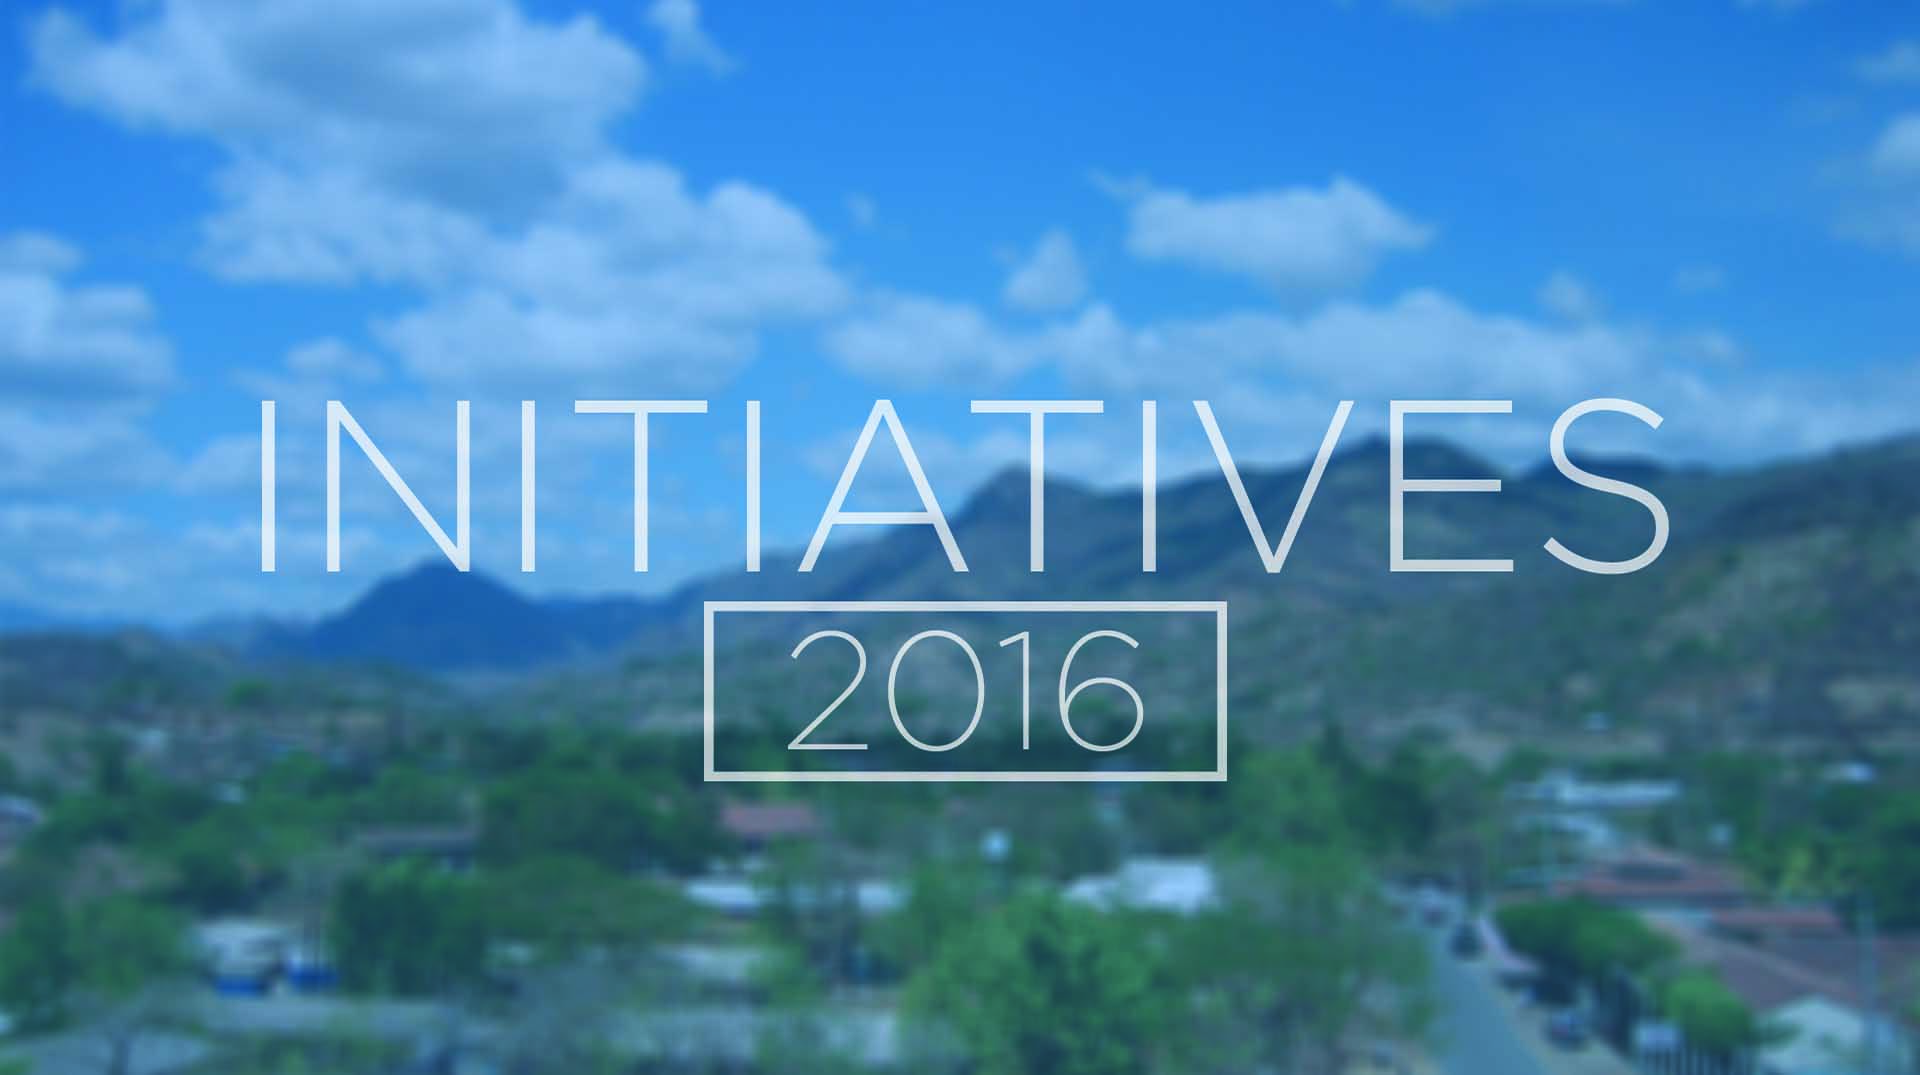 2015 GLOBAL INITIATIVES  Make a difference in Jesus' name this next year on one of our Short Term Trips. Make plans now to go on a faith adventure to make Jesus known.  - Nicaragua - Living Water  - March 13-19 - $2,000 - Limited Space Available - Registration   deadline, Nov. 1st.  - el Salvador - Compassion  - June 18-24 - $2,400 To learn more details and to sign-up go  HERE !